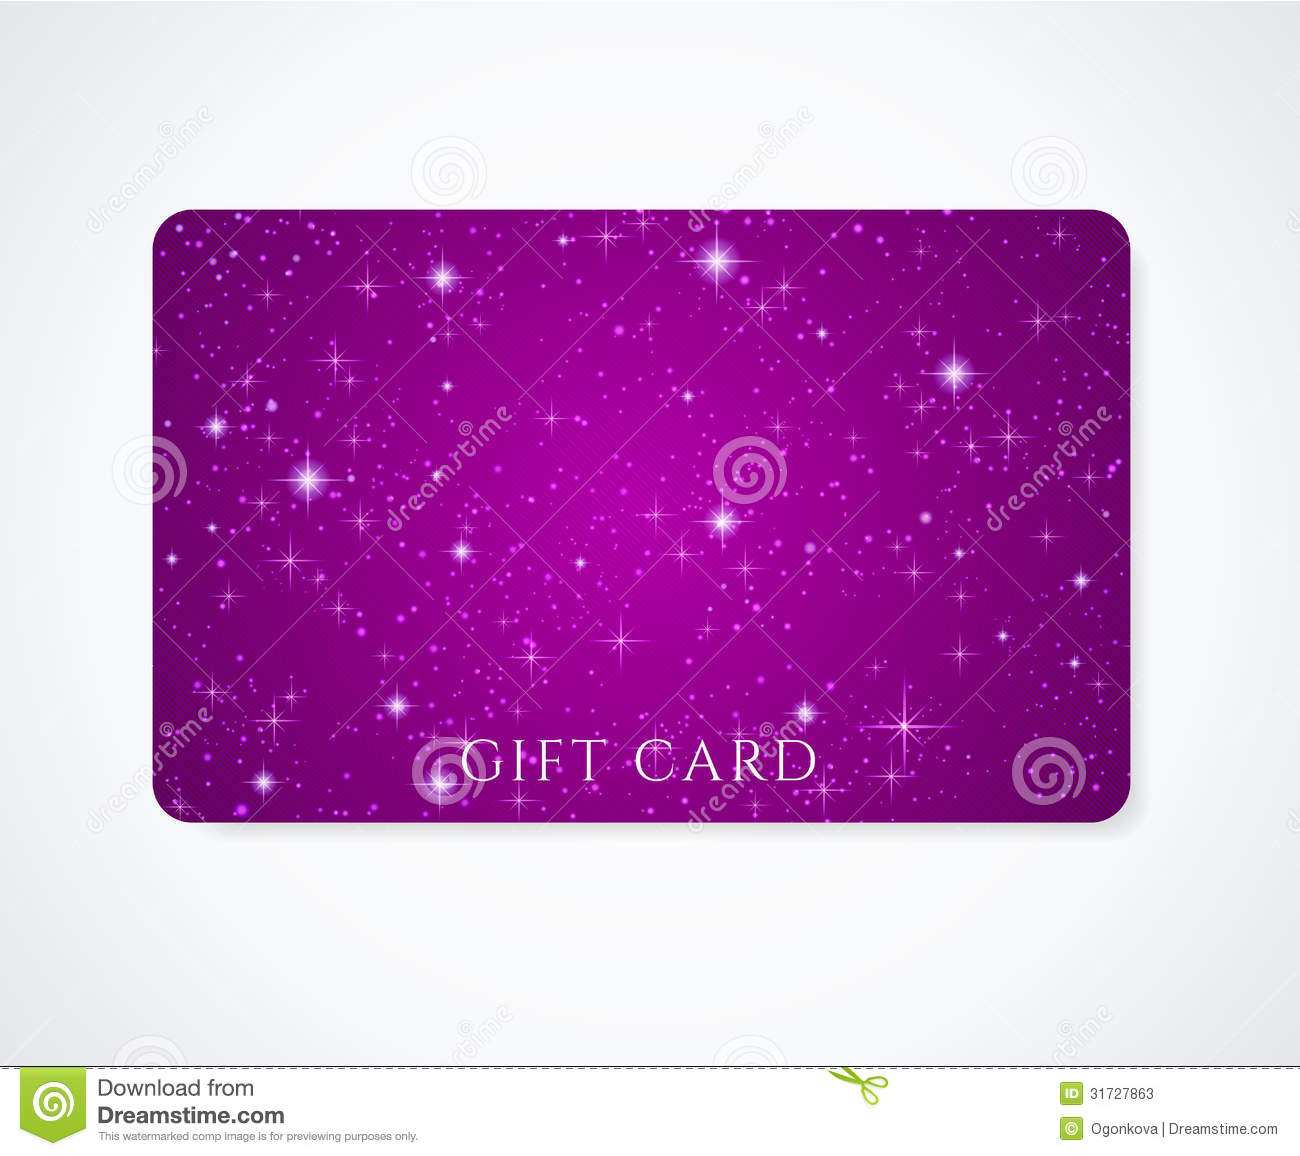 Gift card business model